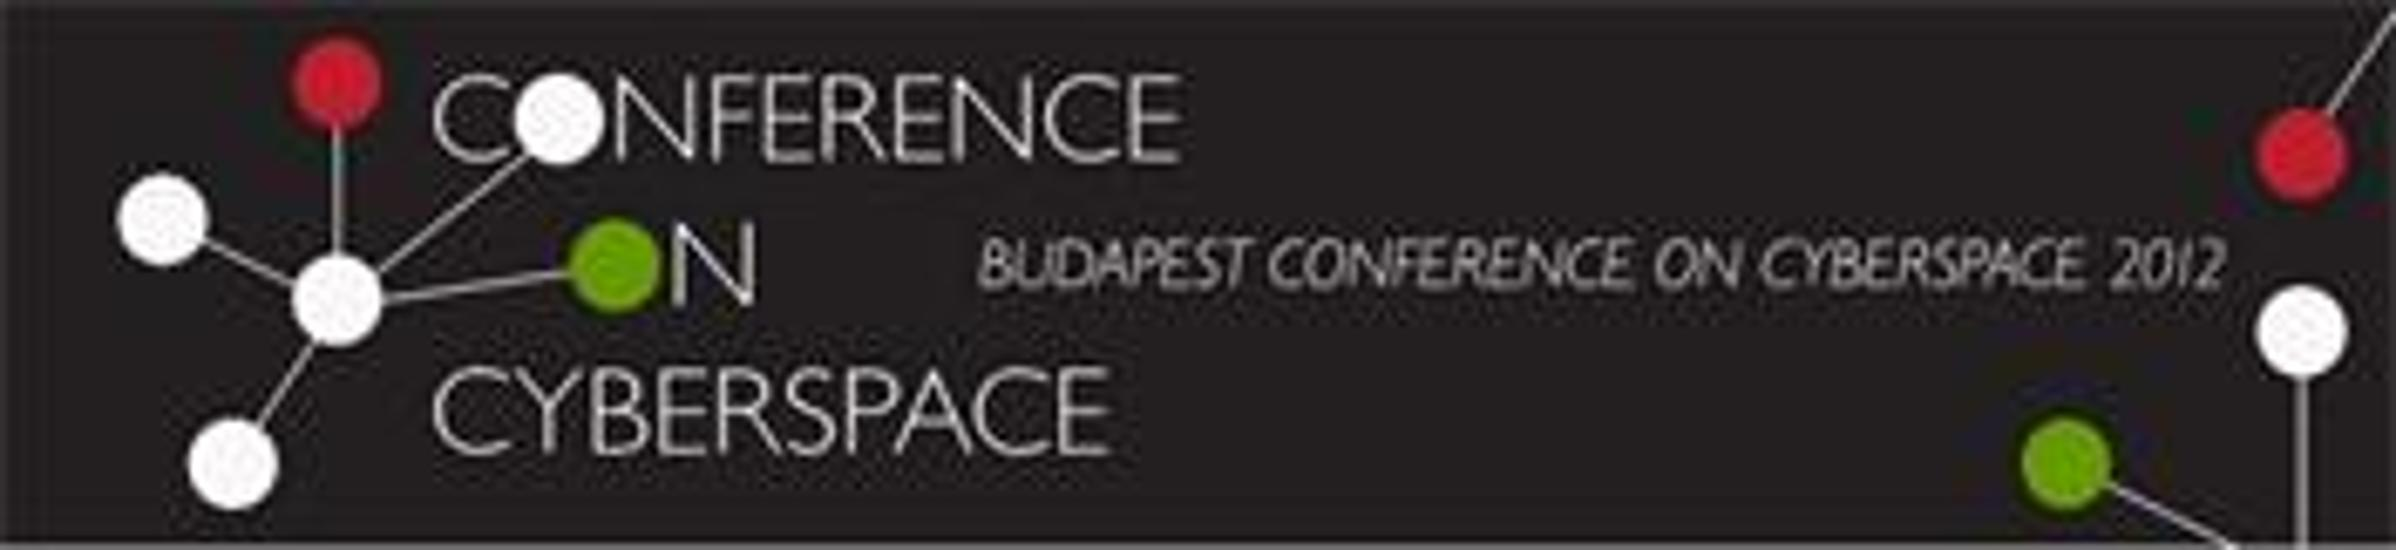 Some Takeaways From The Budapest Conference On Cyberspace